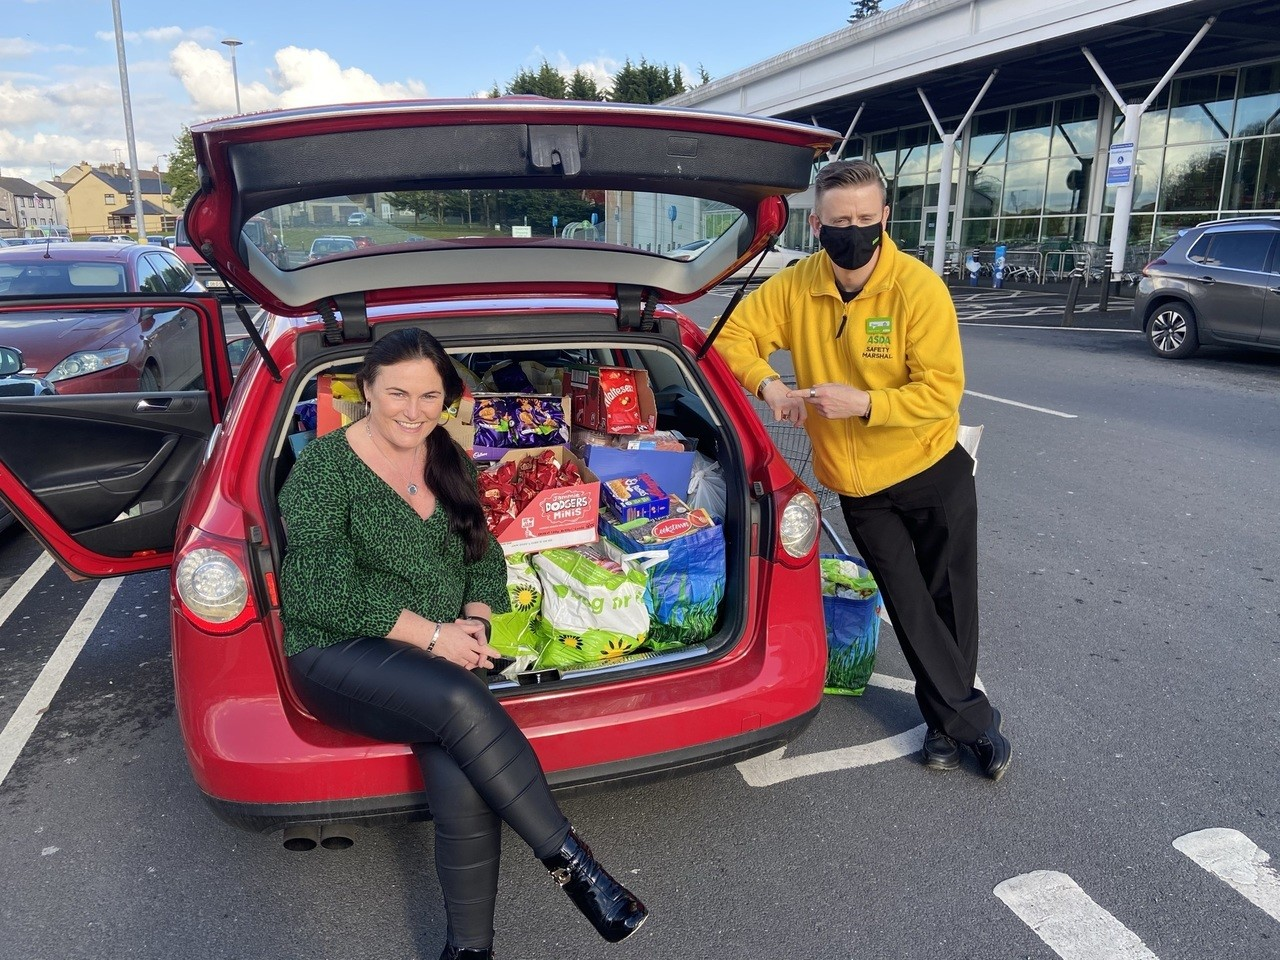 Supporting communities donation Grant for £750 donated to Autism NI | Asda Enniskillen